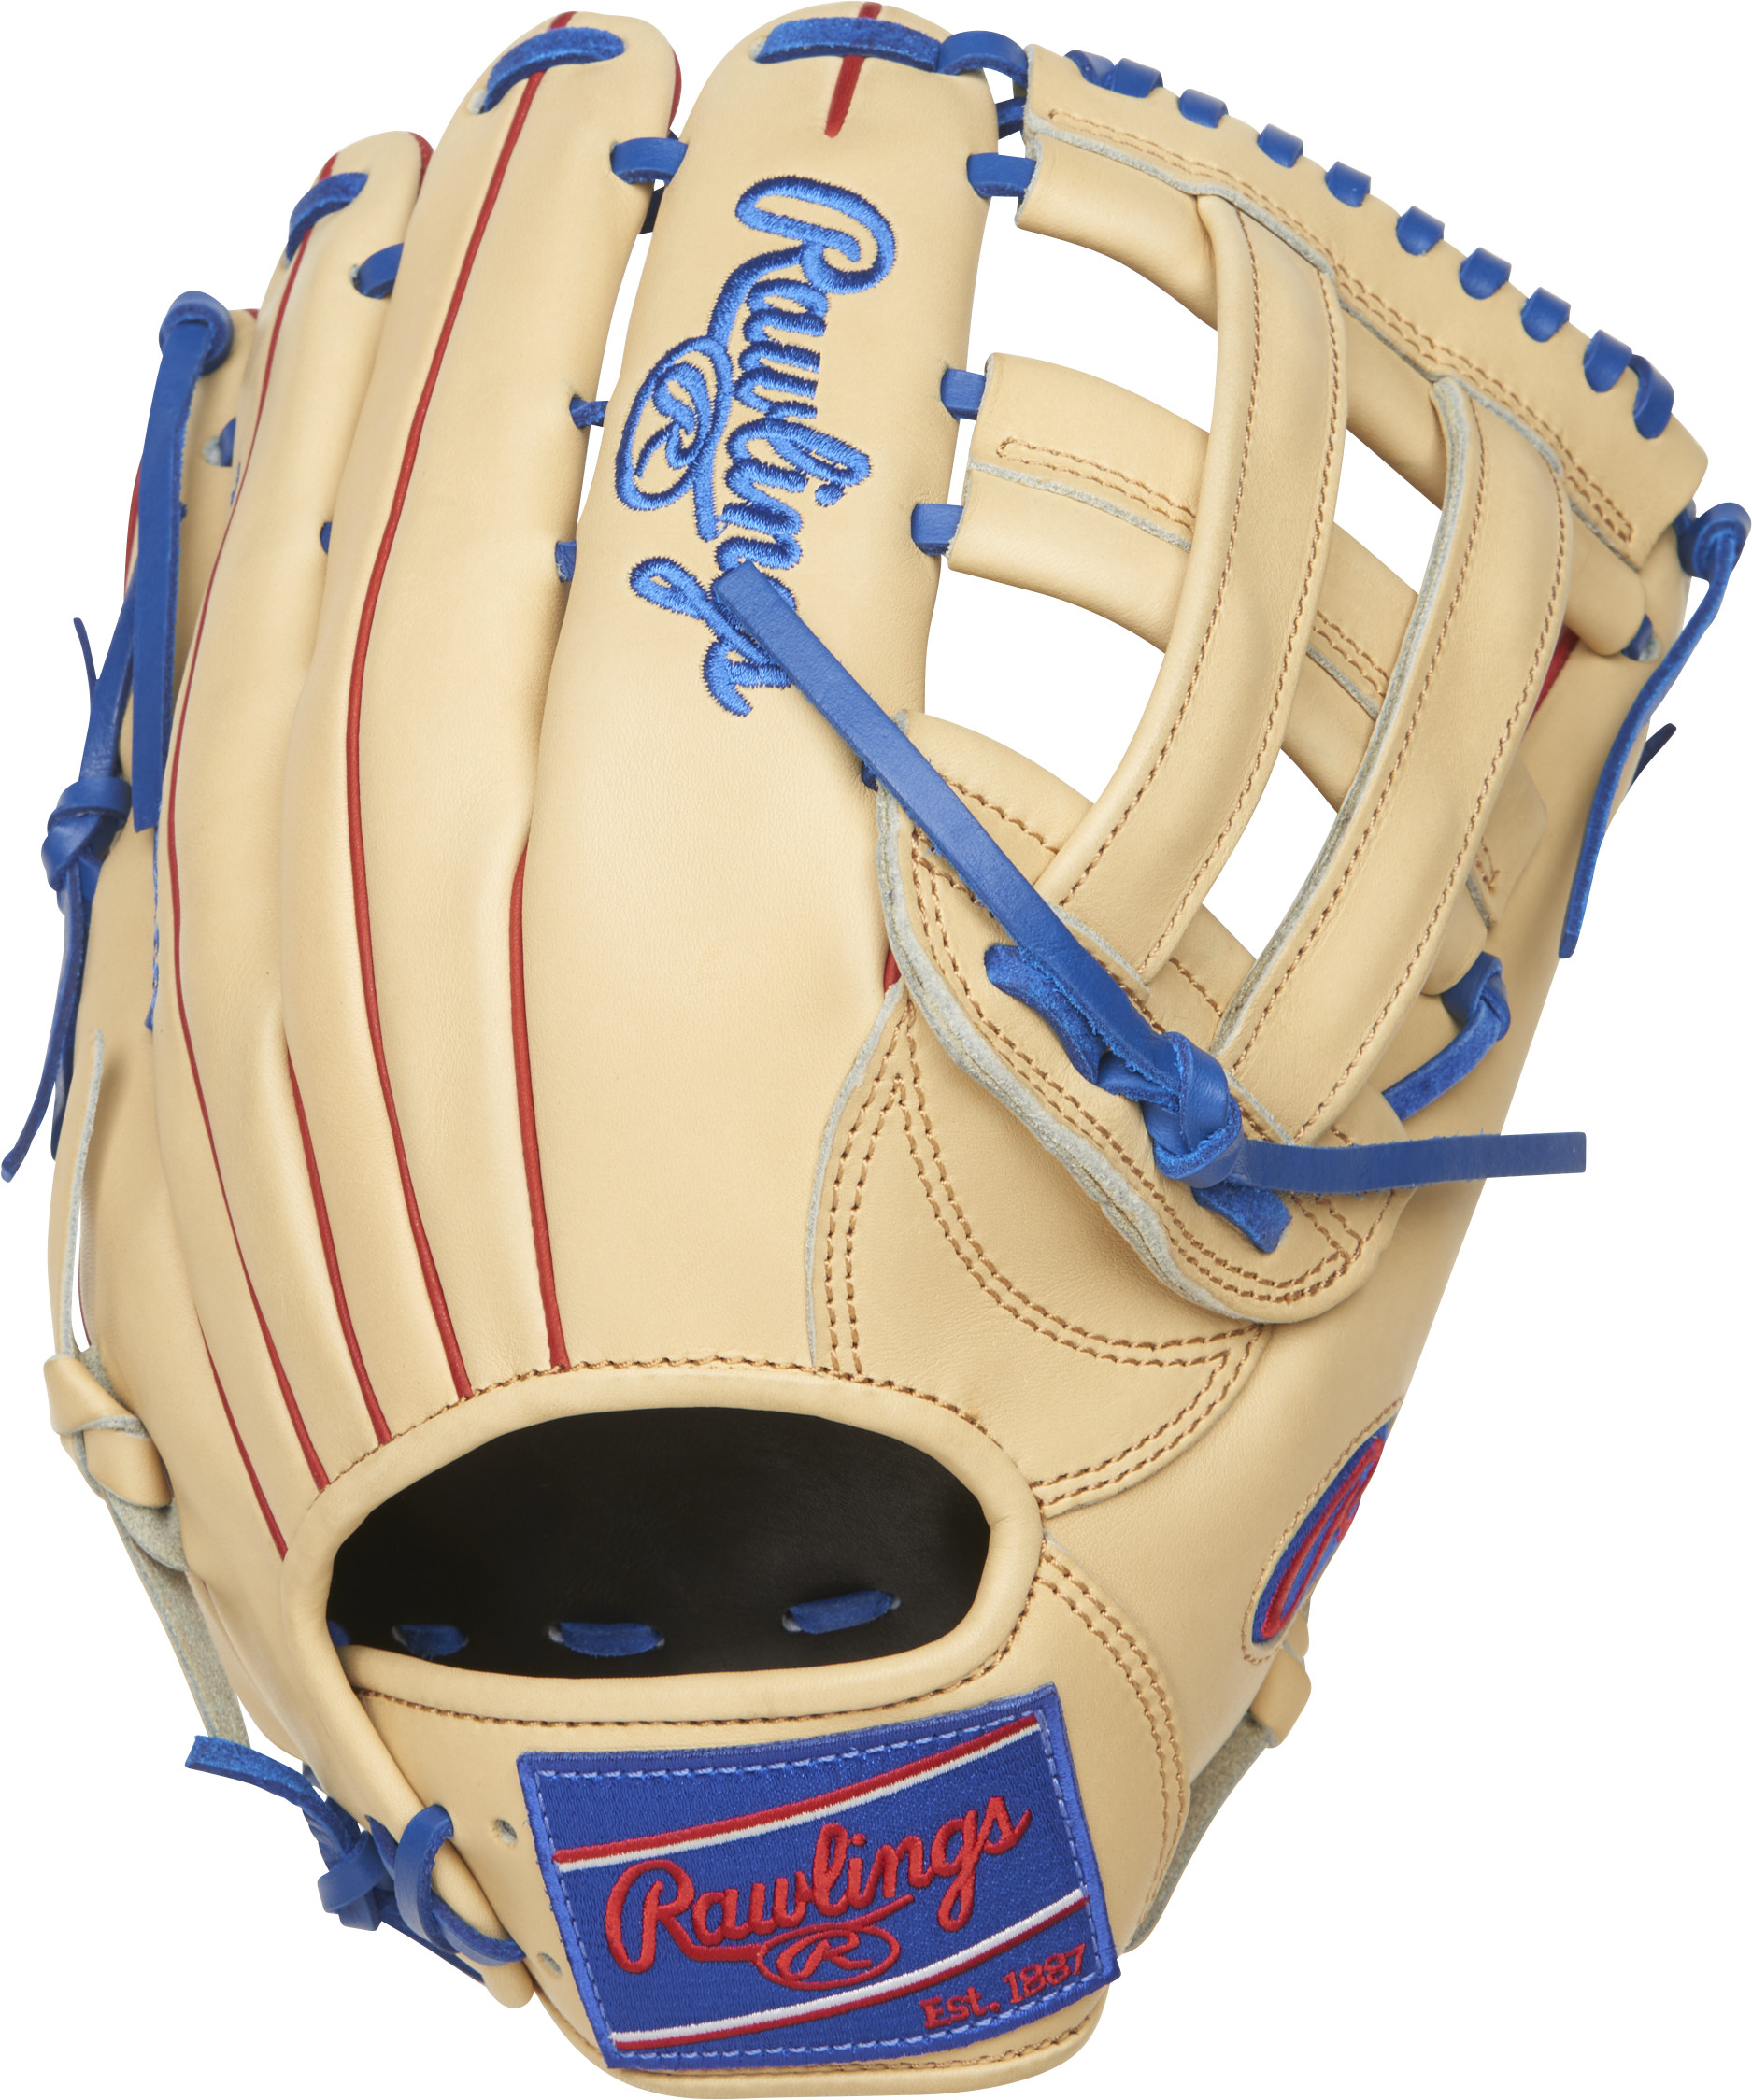 http://www.bestbatdeals.com/images/gloves/rawlings/PRO3039-6CCR-2.jpg